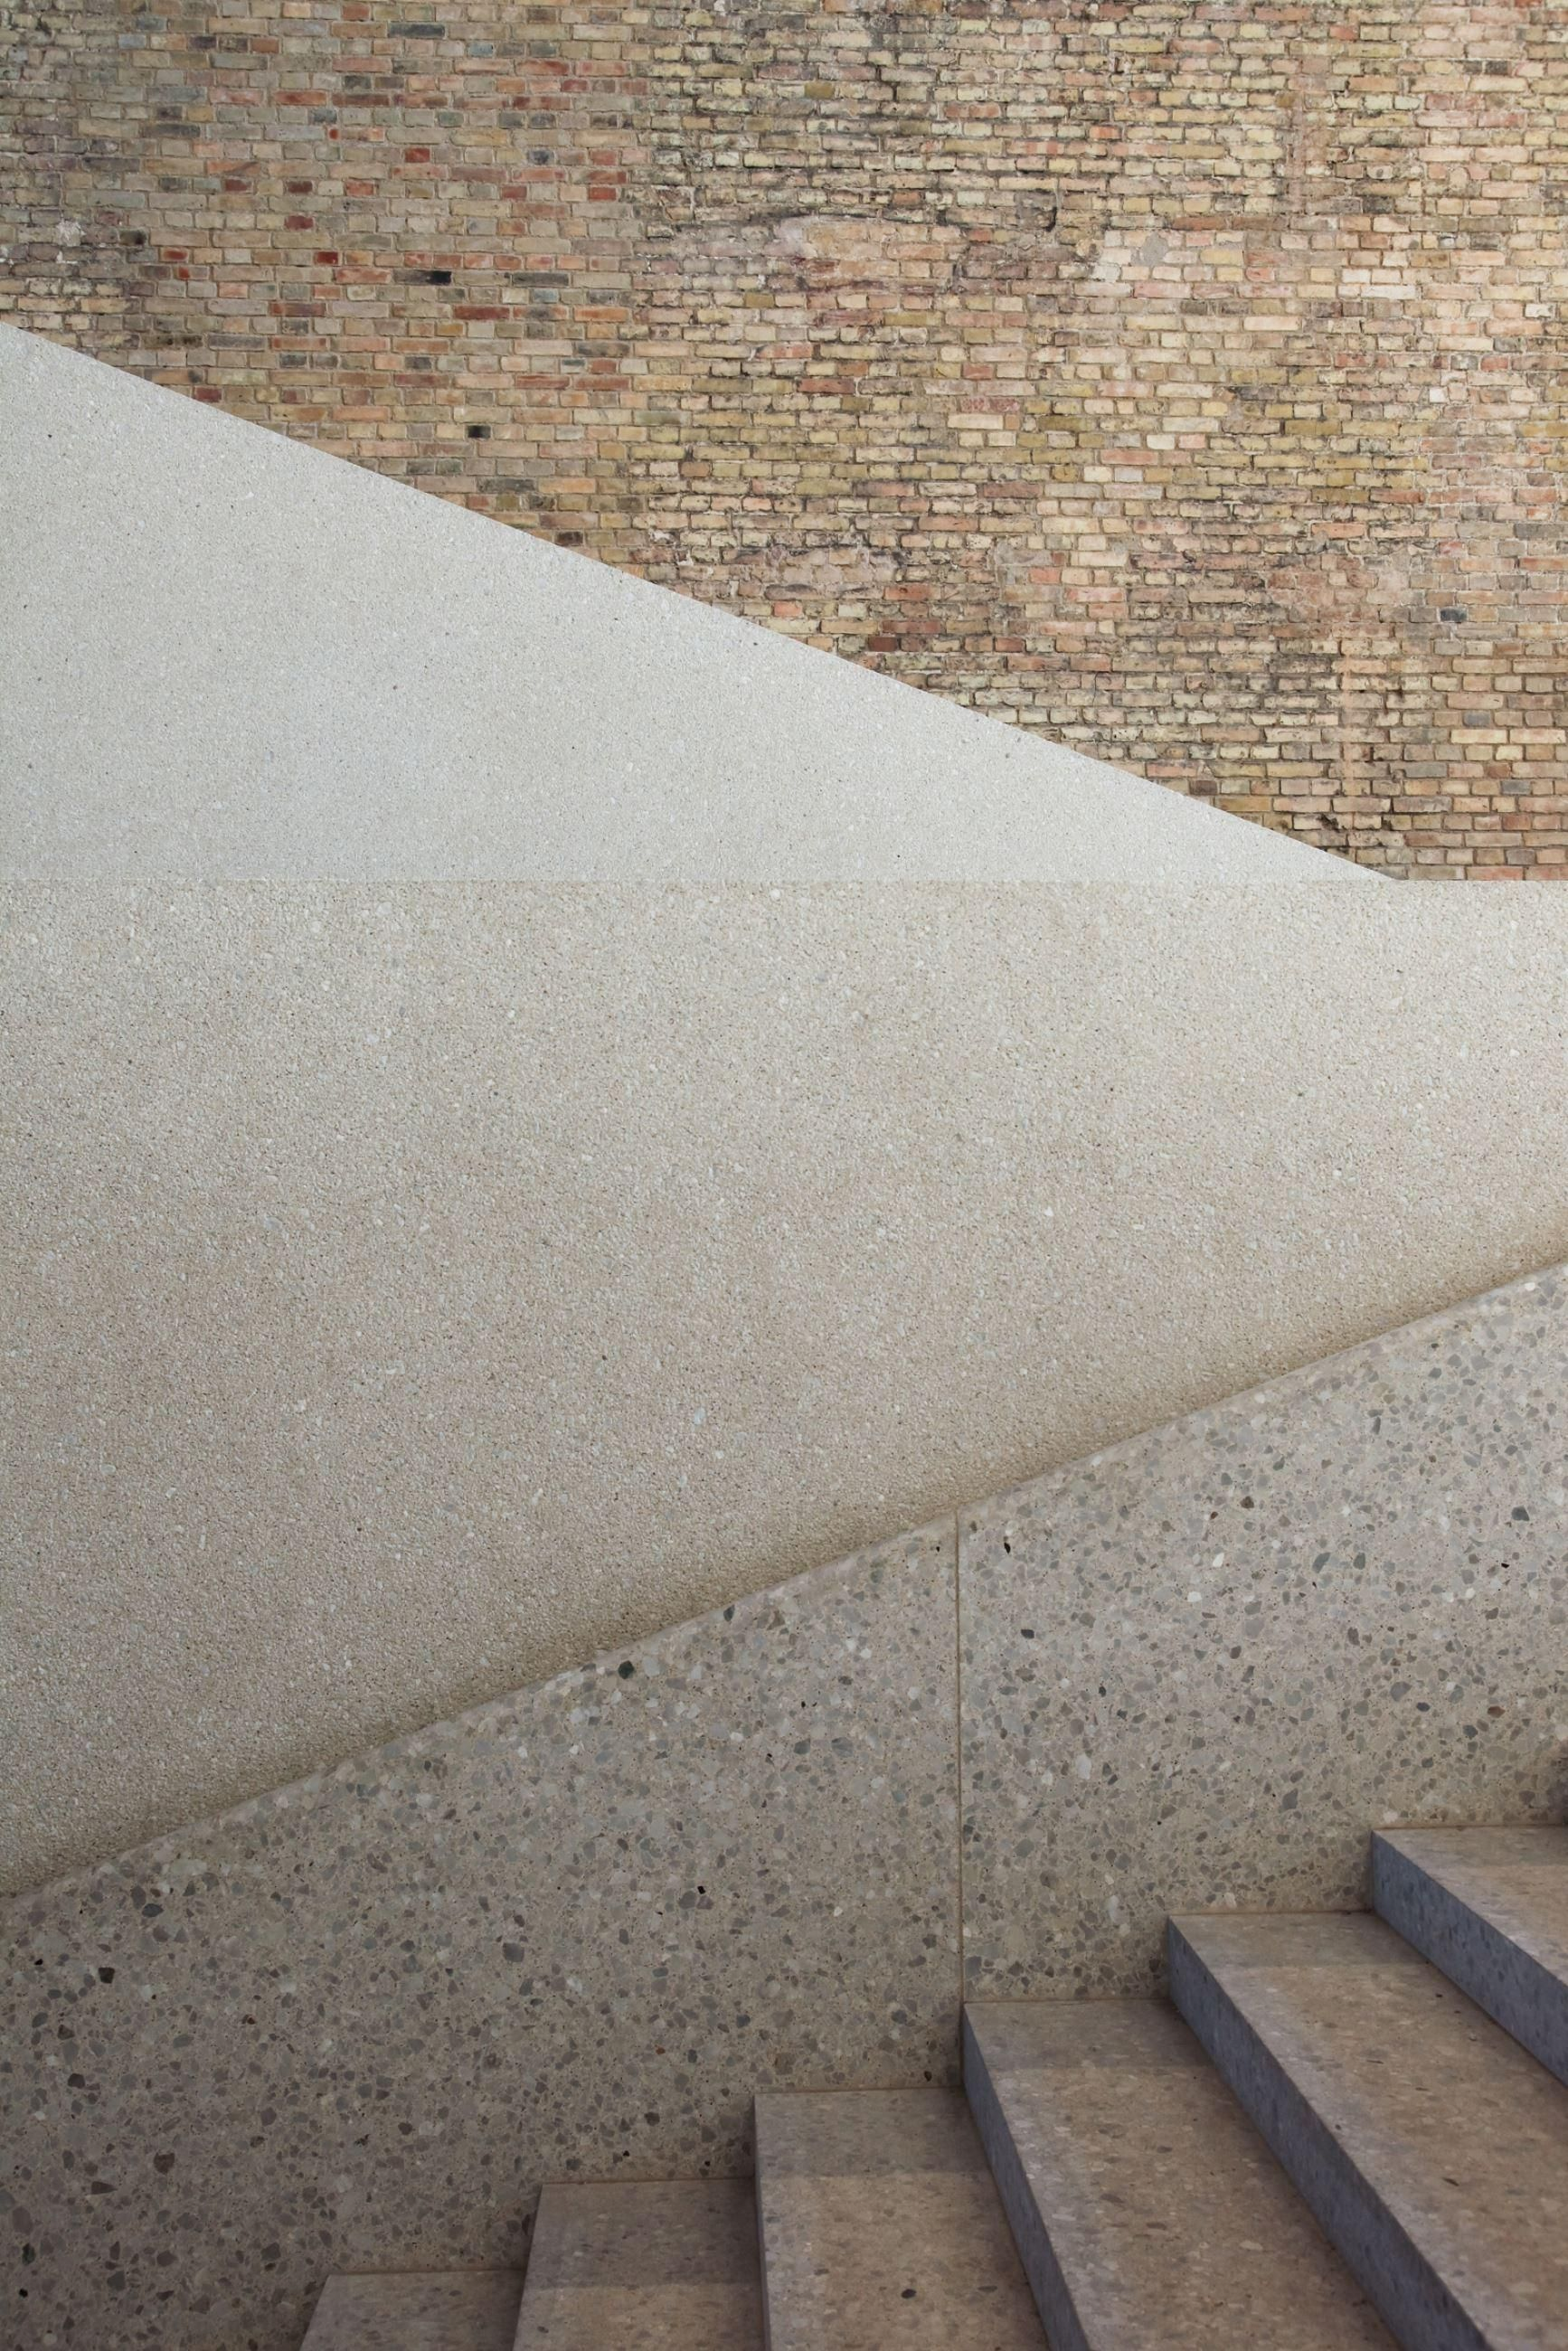 Innenarchitektur Museum Berlin Neues Museum David Chipperfield Architects Material Texture